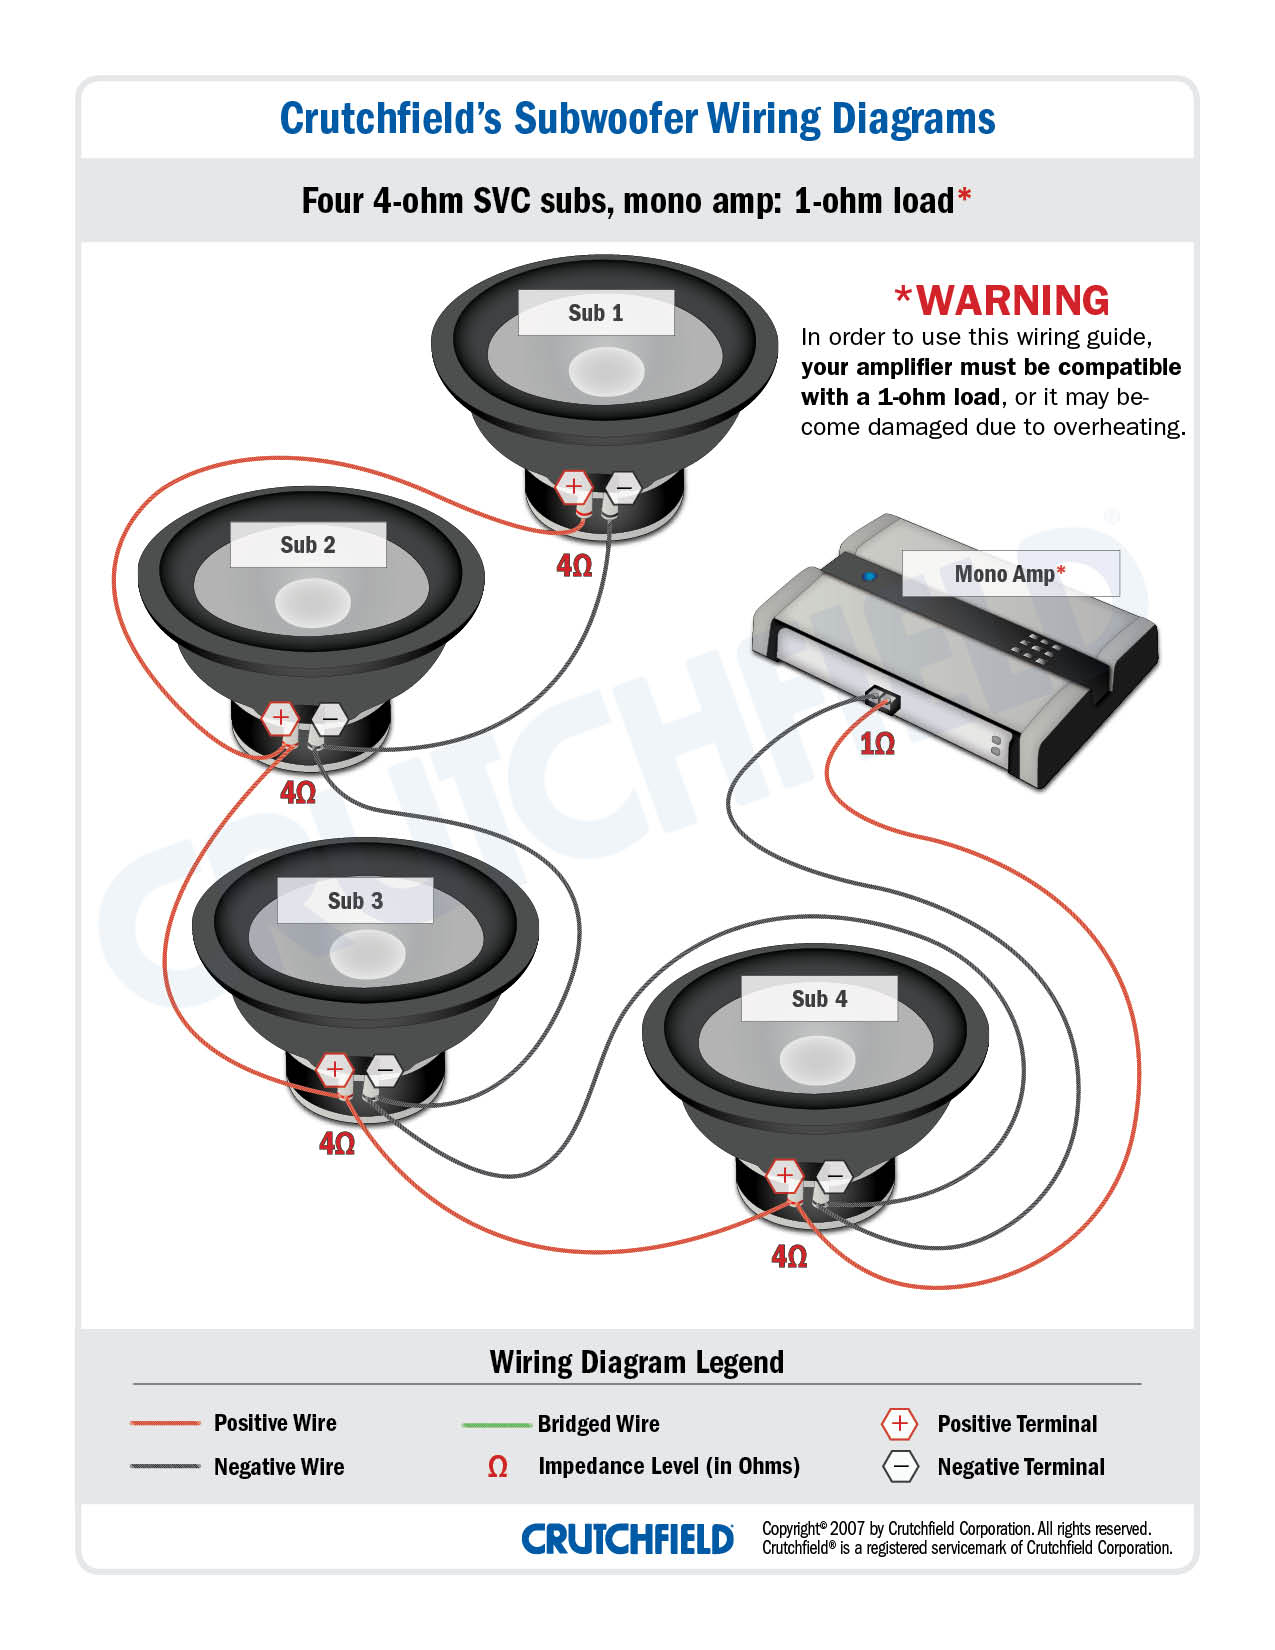 Subwoofer Wiring Diagrams How To Wire Your Subs Em